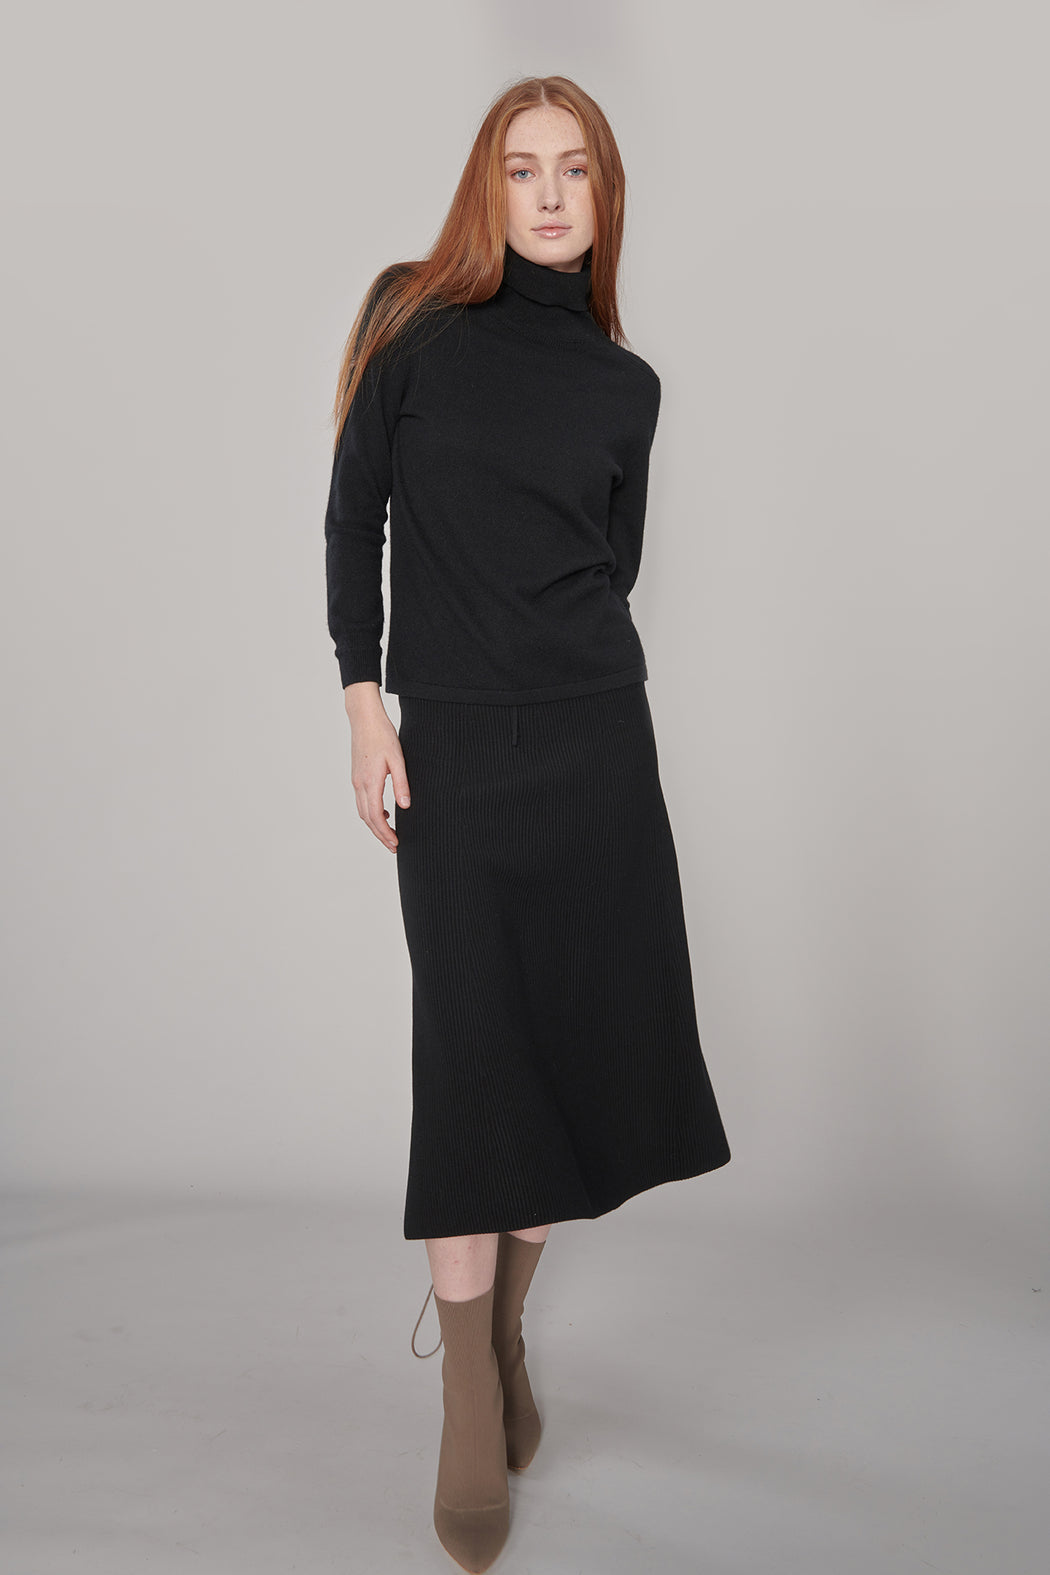 CS002 Black Cashmere Sweater